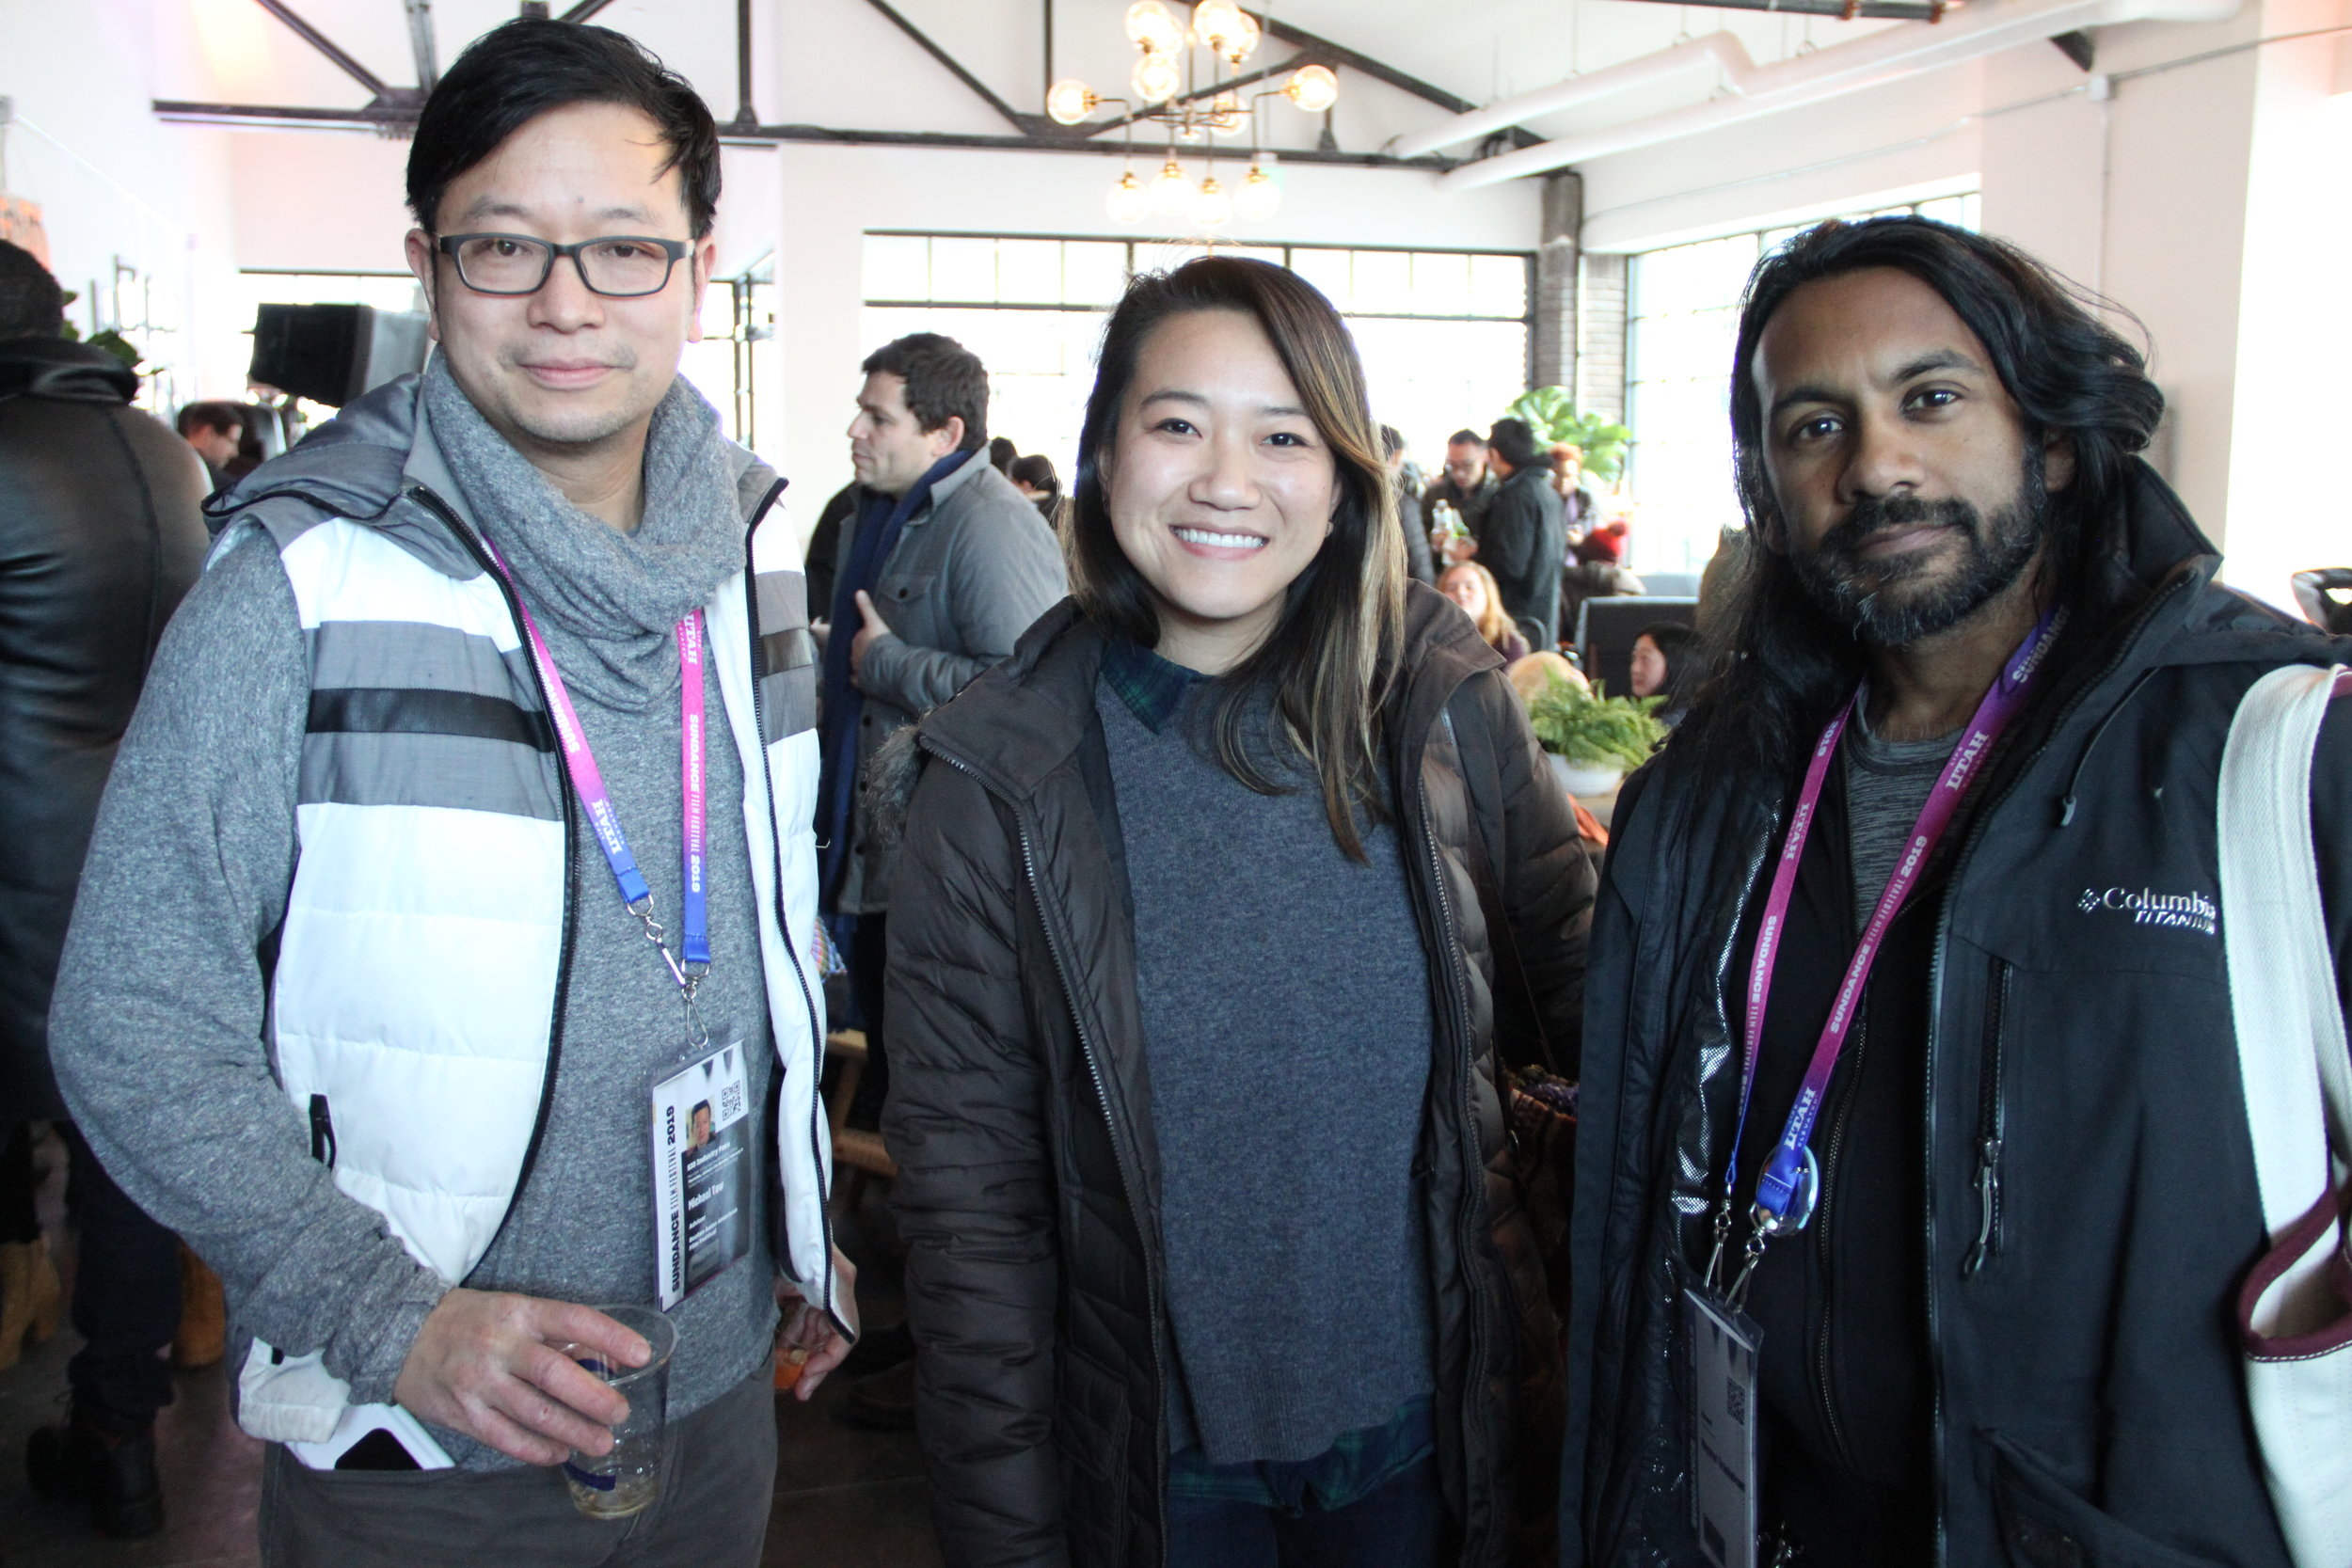 Michael Tow, an adviser for the Boston Asian American Film Festival and friend meet up with Mayuran Tiruchelvam at the Asian Pacific Filmmakers Experience in Park City meet-up at RYOT & VICE Studios Lounge. (Photo: Abraham Ferrer/Visual Communications Photographic Archive)